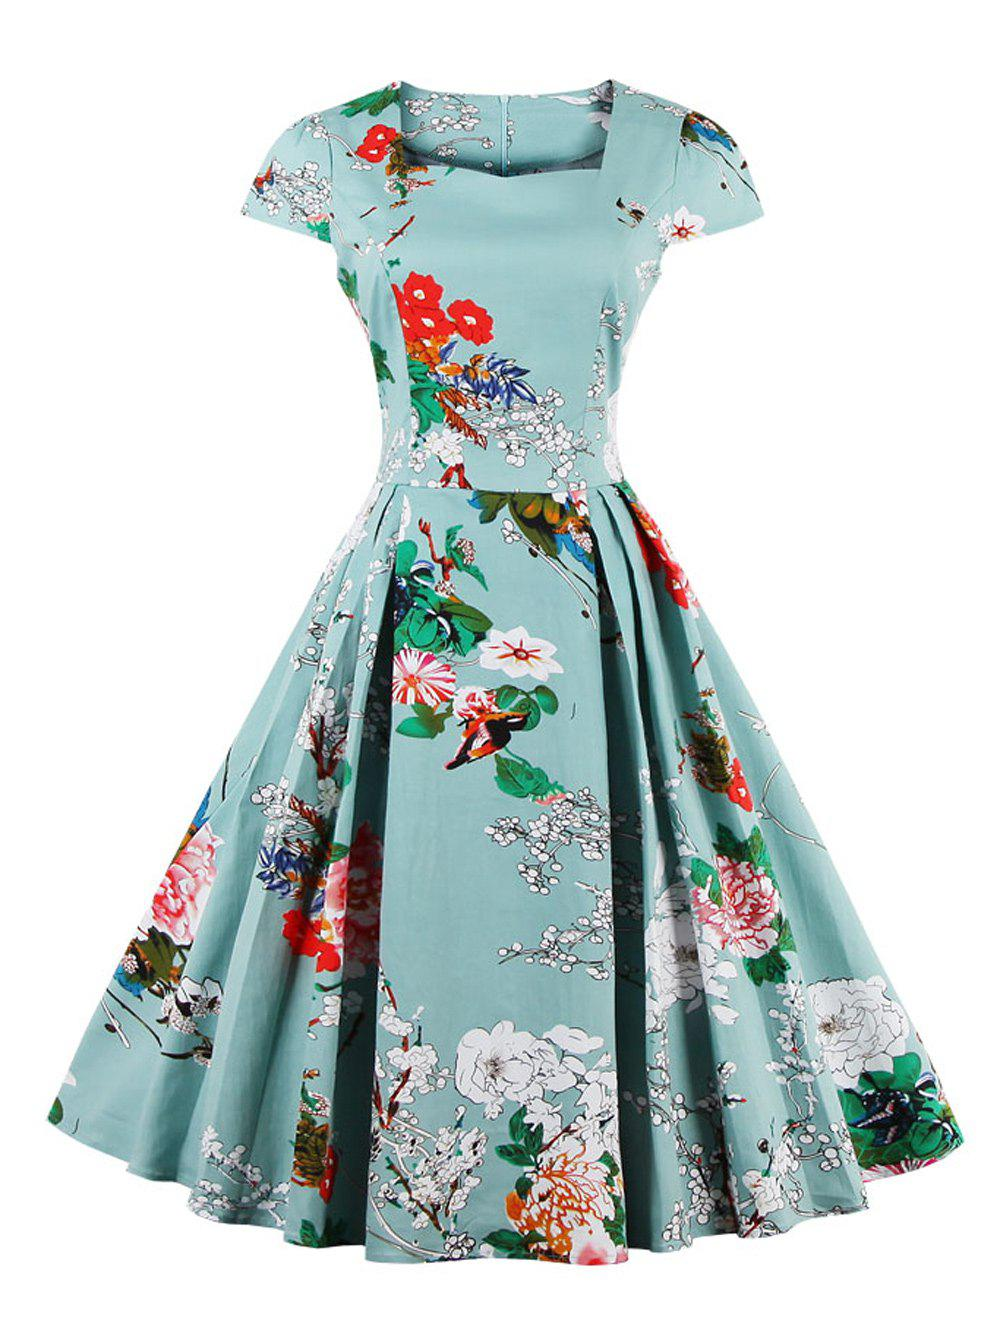 New Retro Sweetheart Neck Cap Sleeve Floral Print Flare Dress